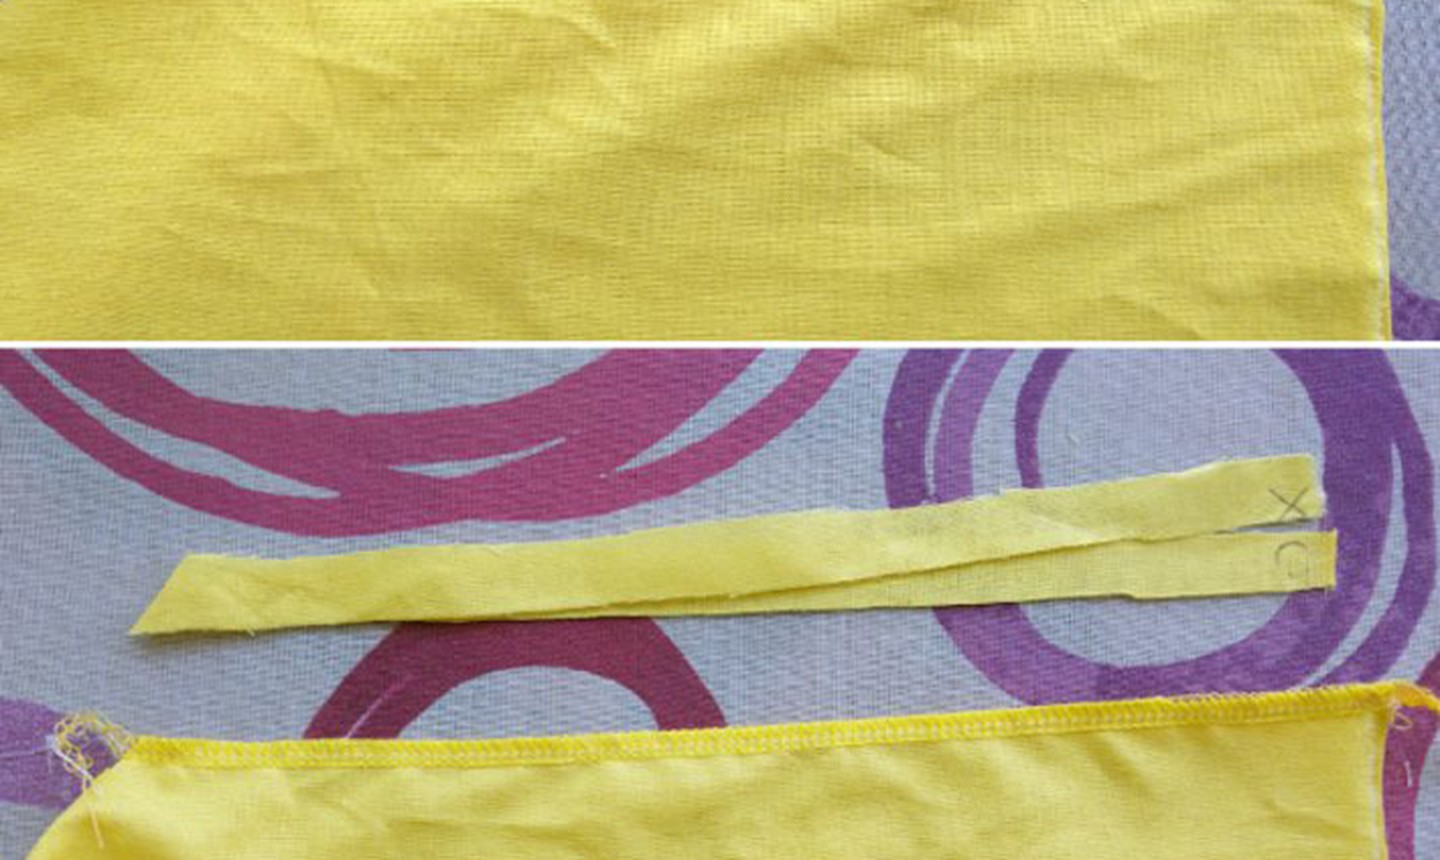 Cut slices of fabric